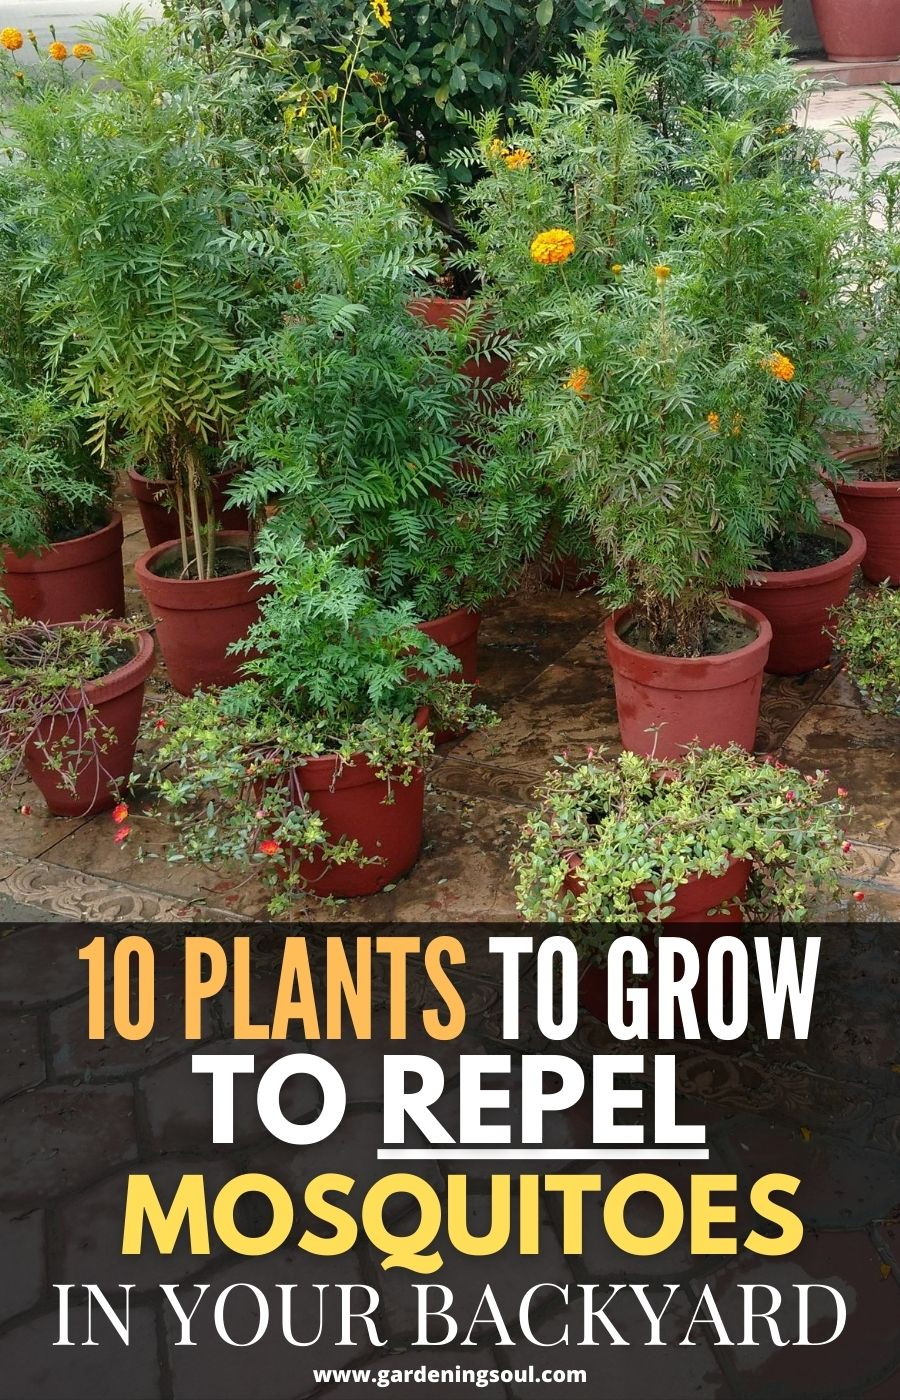 10 Plants to Grow to Repel Mosquitoes in Your Backyard